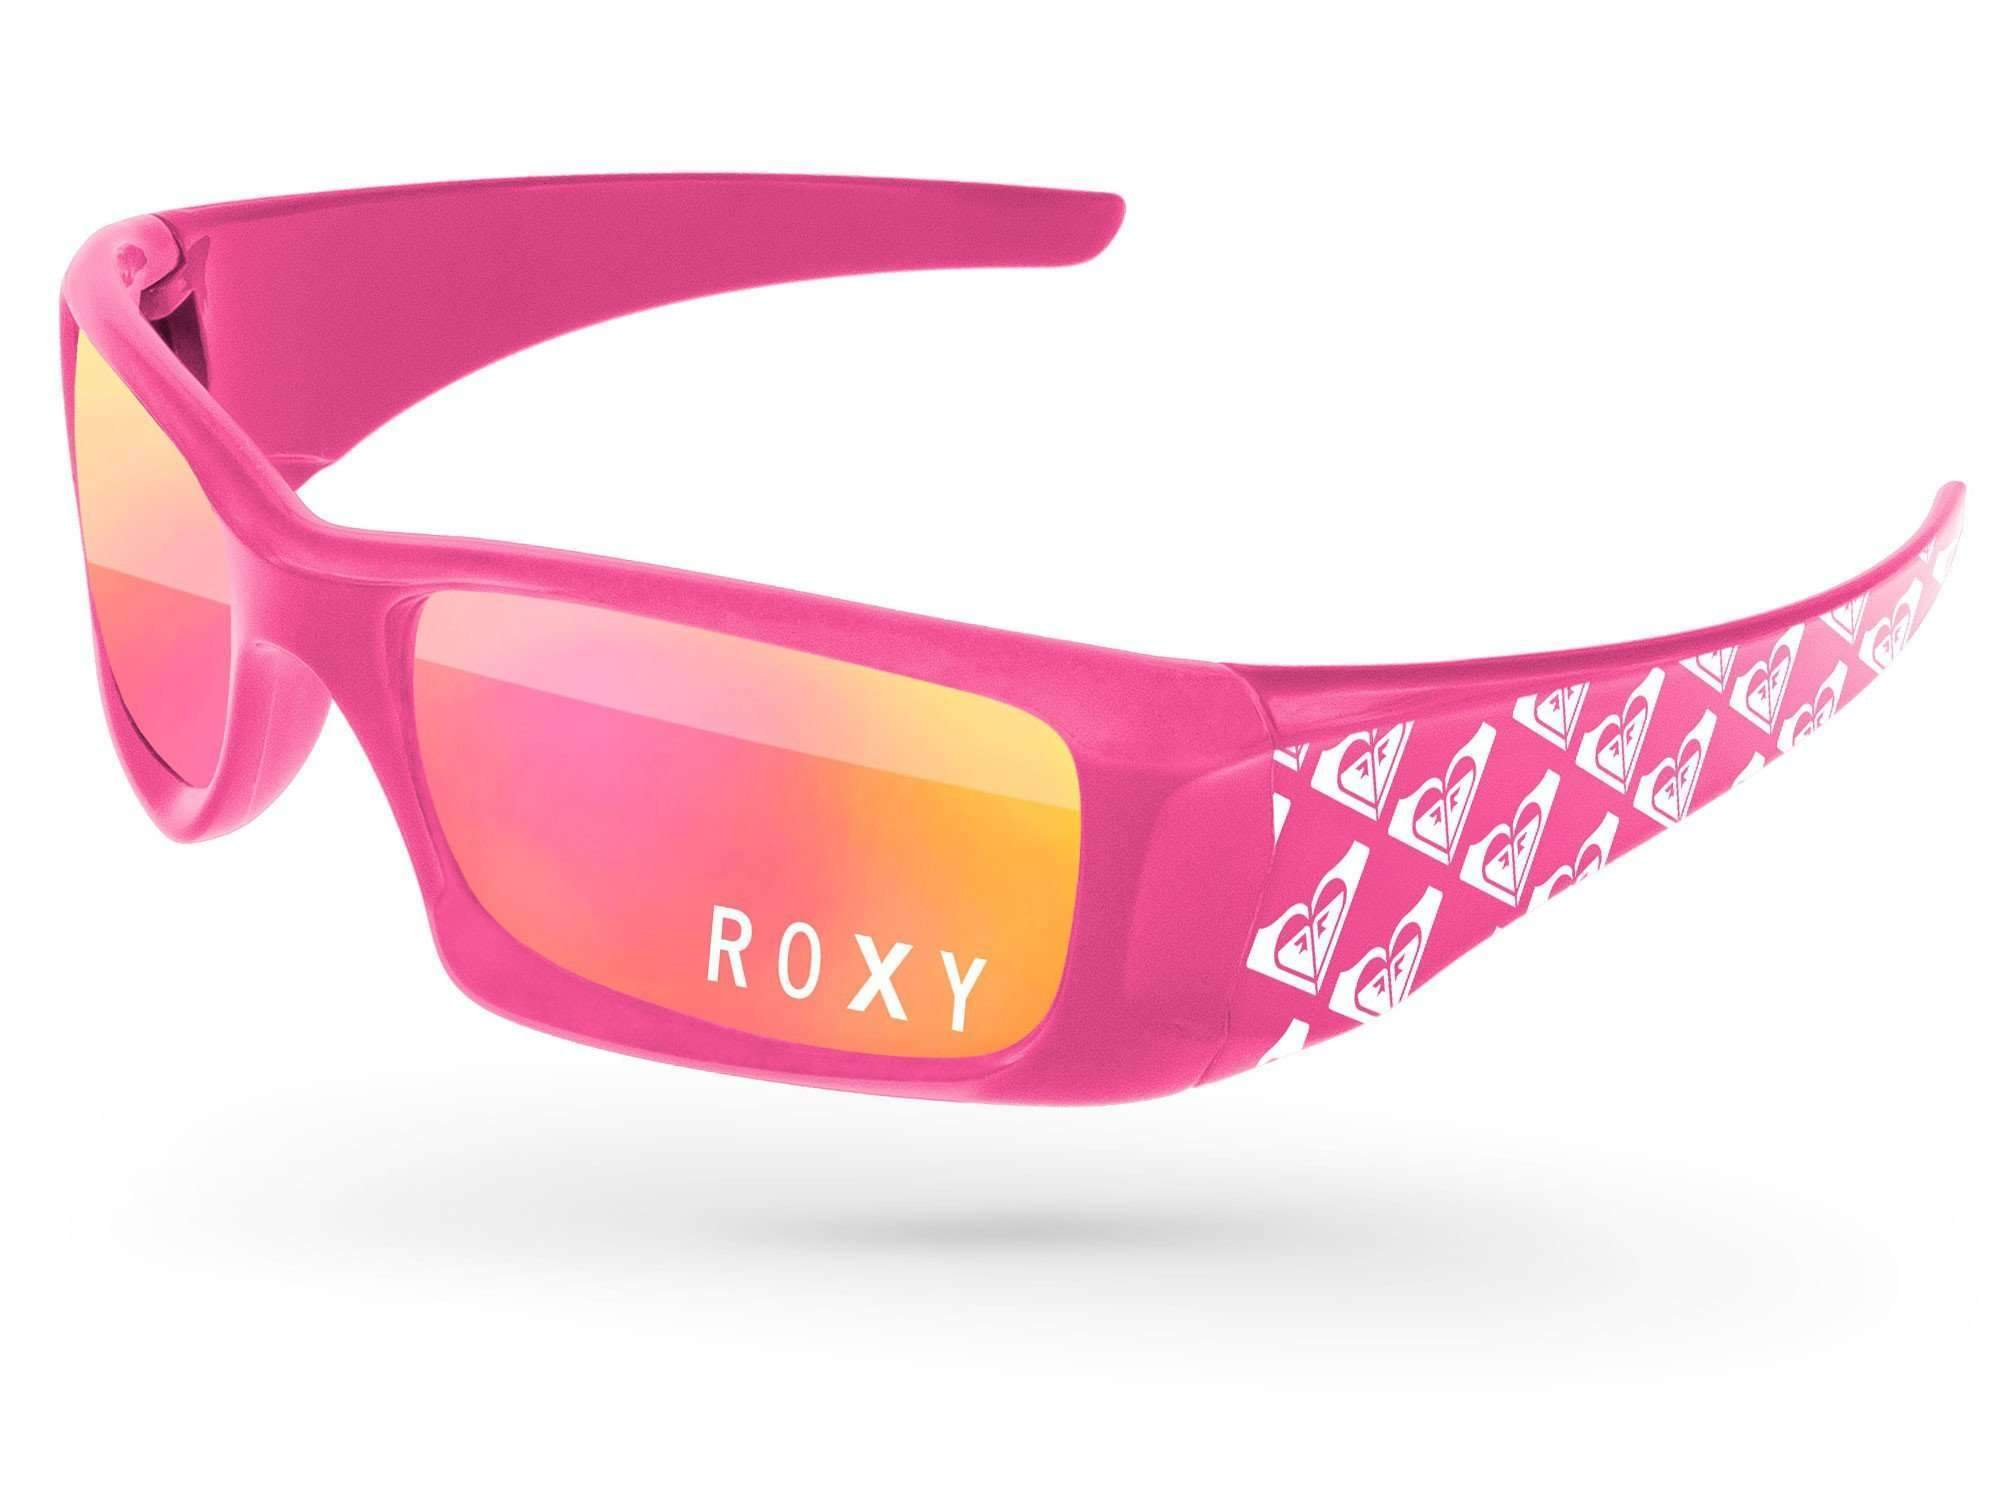 Wrap Mirror Promotional Sunglasses w/ 1-color lens imprint & 1-color extended arms imprint